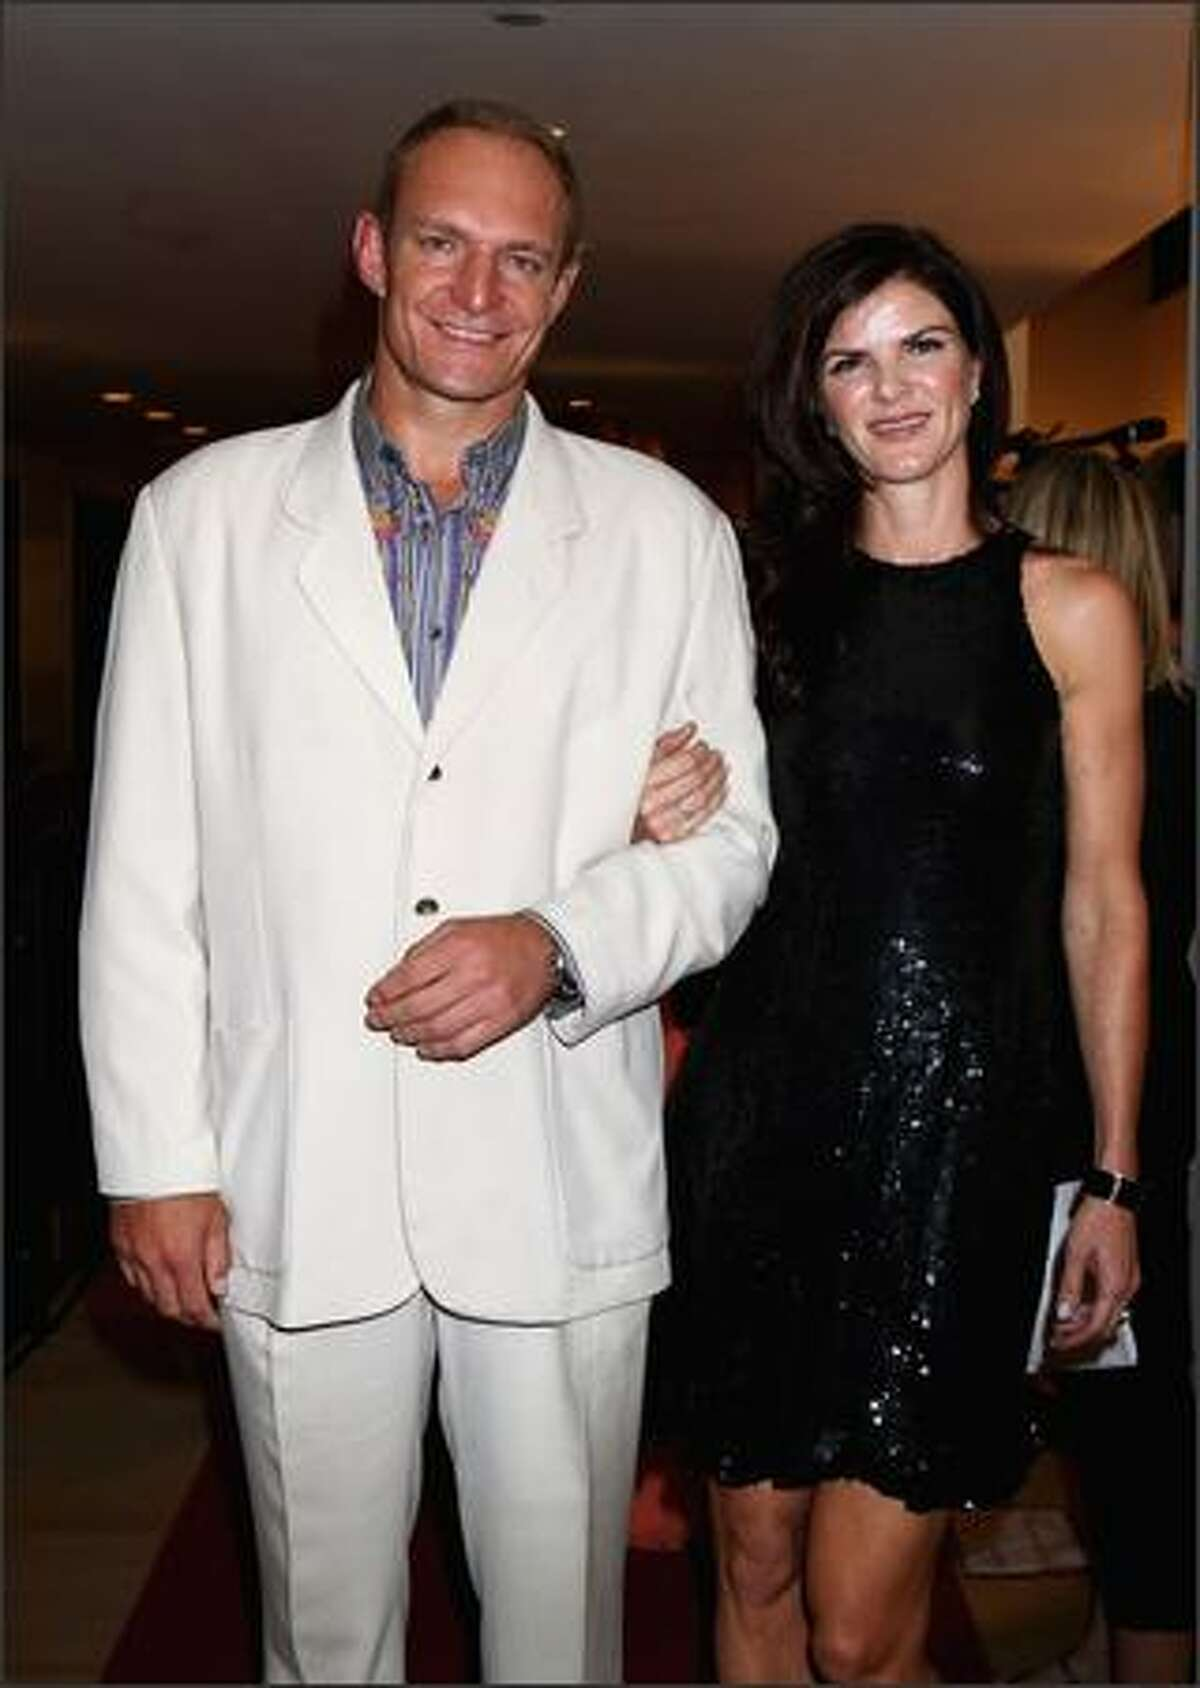 Francois Pienaar and his wife arrive at the Grand Opening of the new One&Only Cape Town resort in Cape Town, South Africa.